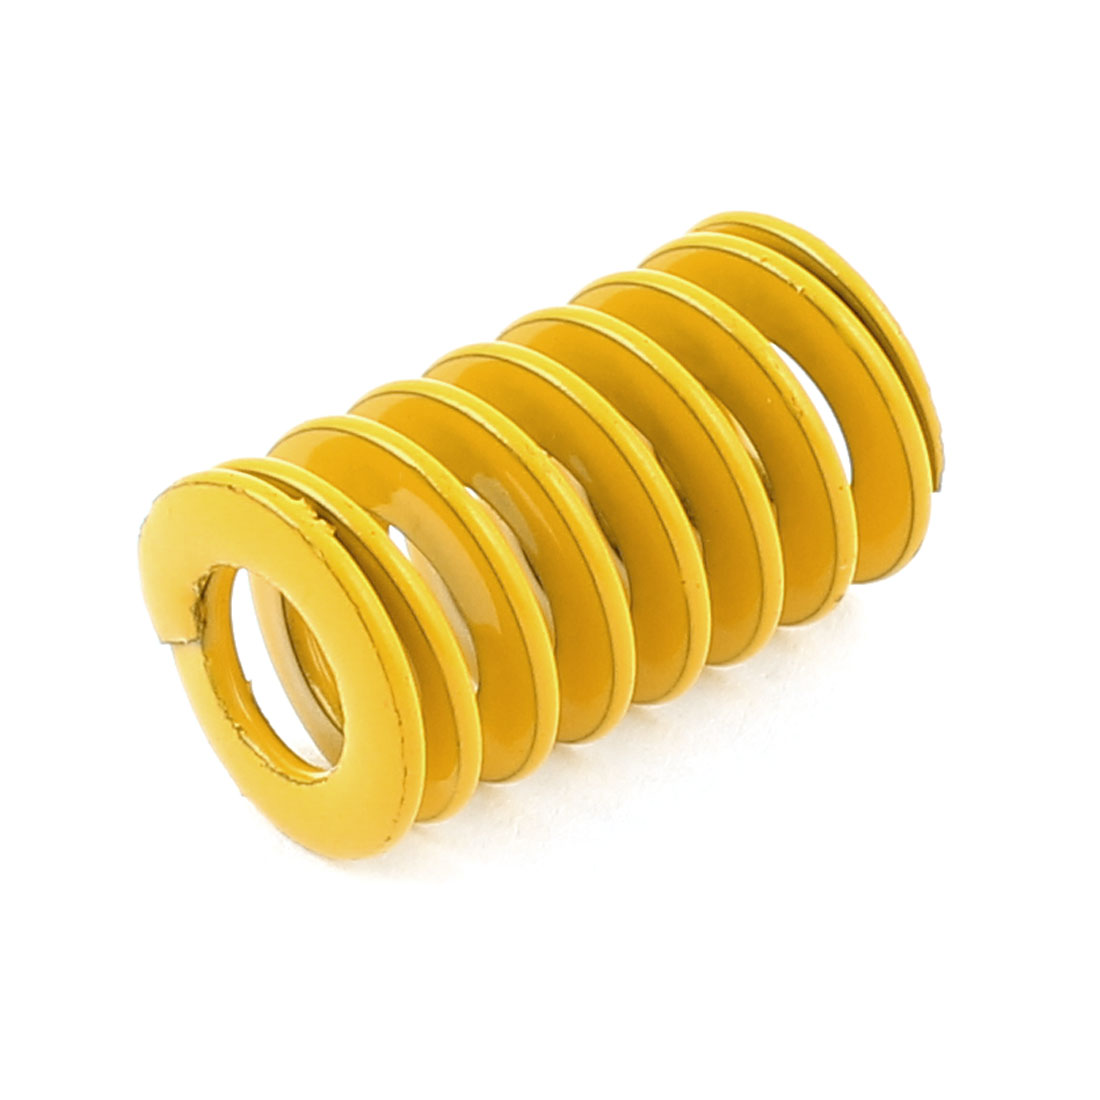 Yellow Alloy Steel Light Load Press Flat Coil Compression Die Spring 12mm x 6mm x 20mm